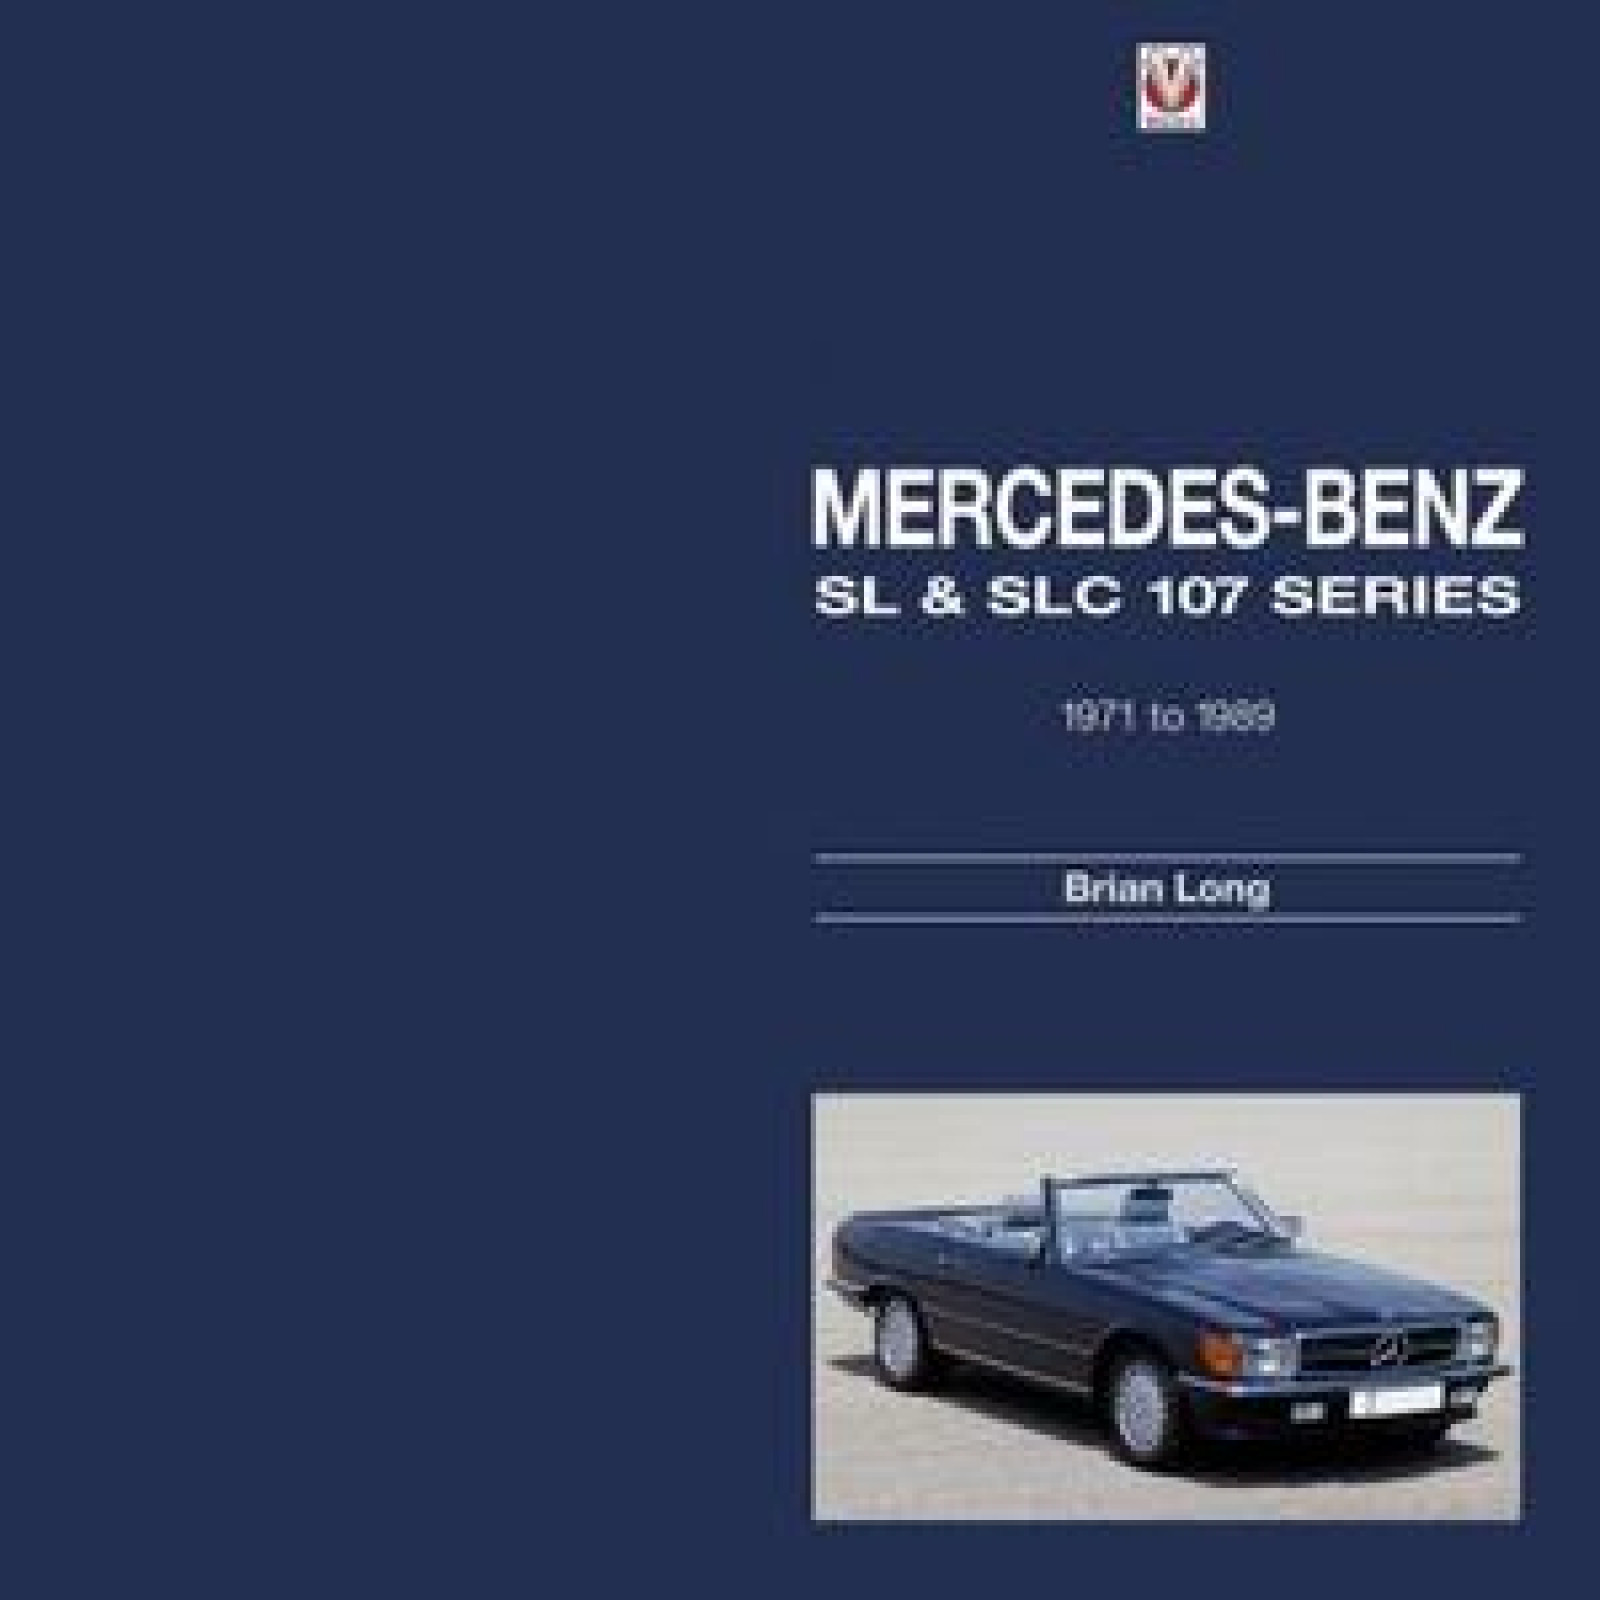 Mercedes benz sl slc 107 series 1971 to 1989 book by for Books mercedes benz